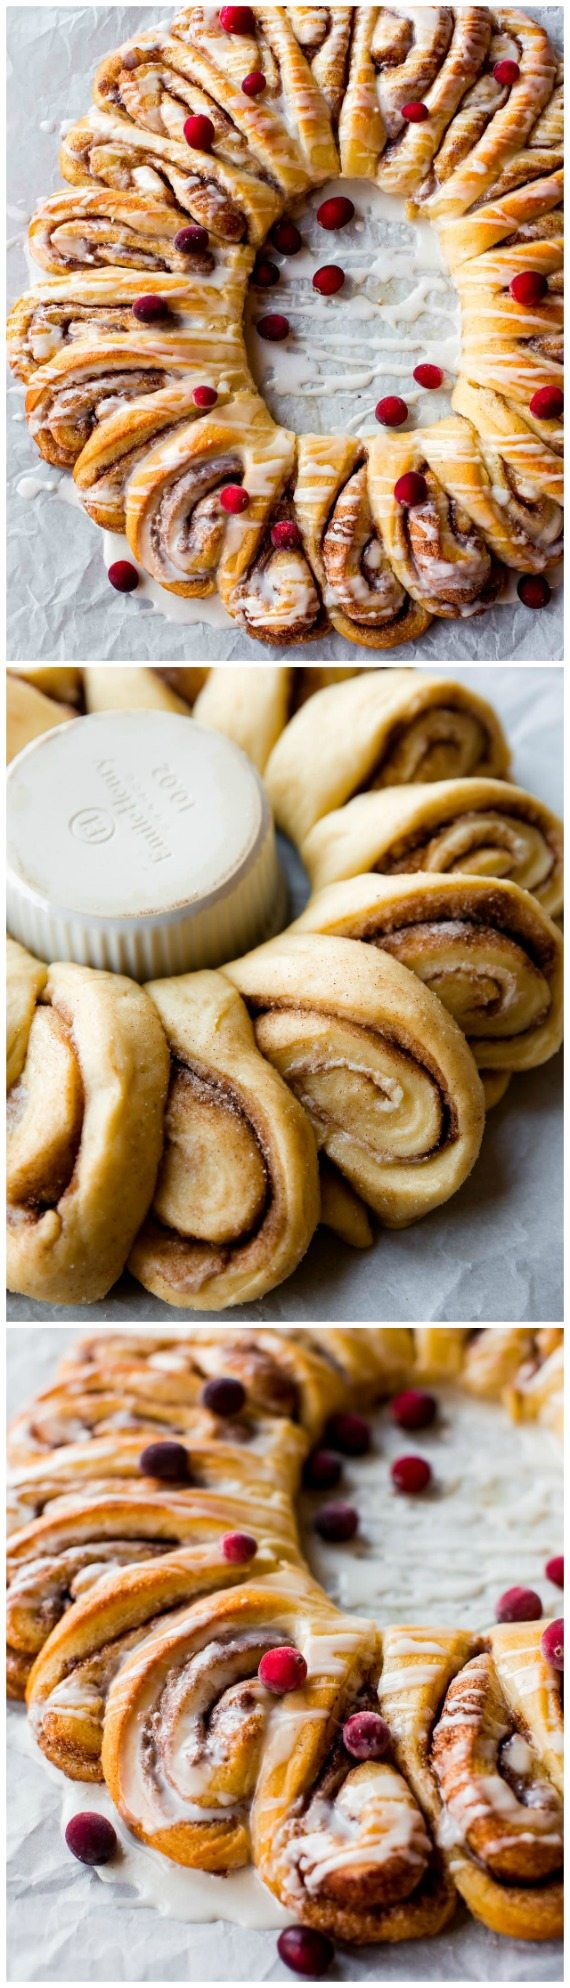 Fulgurant Learn How To Make A Warm Ooey Gooey Cinnamon Roll Recipe Cinnamon Roll Wreath Baking Addiction Pillsbury Cinnamon Roll Recipes French Toast Pillsbury Cinnamon Roll Recipes Using nice food Pillsbury Cinnamon Roll Recipes